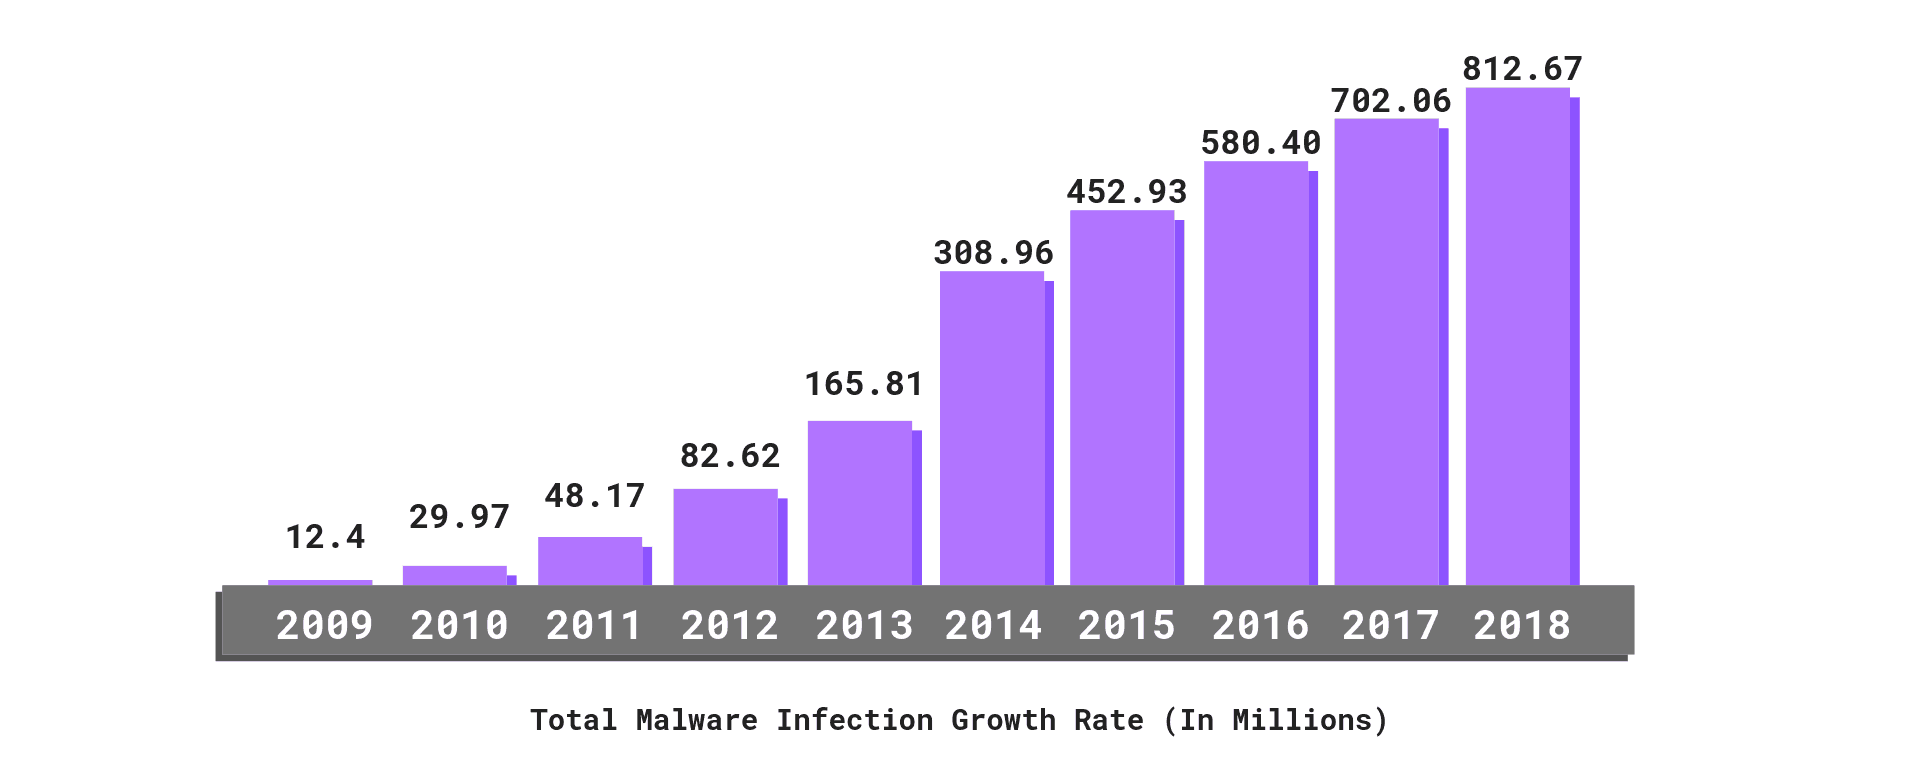 Malware Infection Growth Rate - Cyber Security Statistics